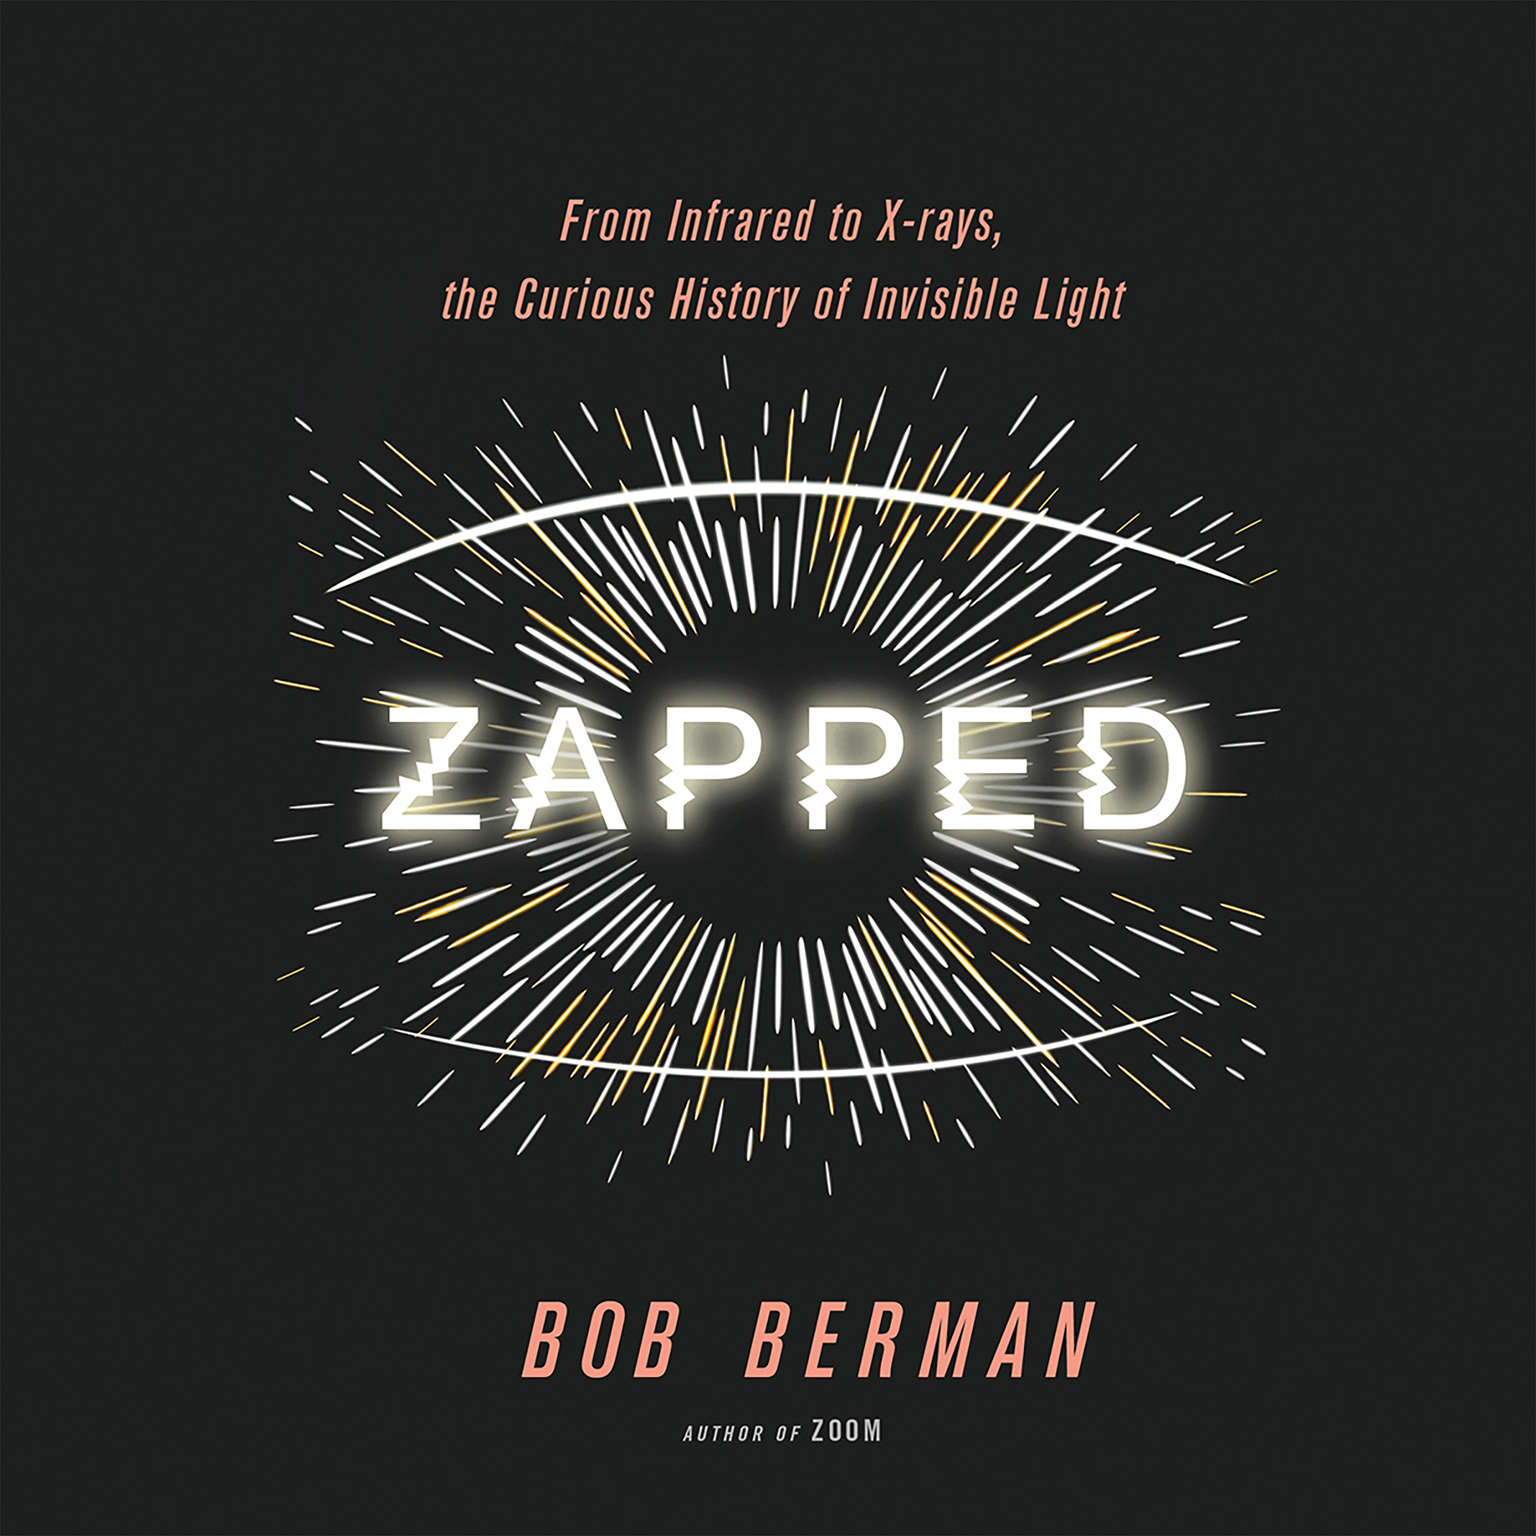 Zapped: From Infrared to X-rays, the Curious History of Invisible Light Audiobook, by Bob Berman